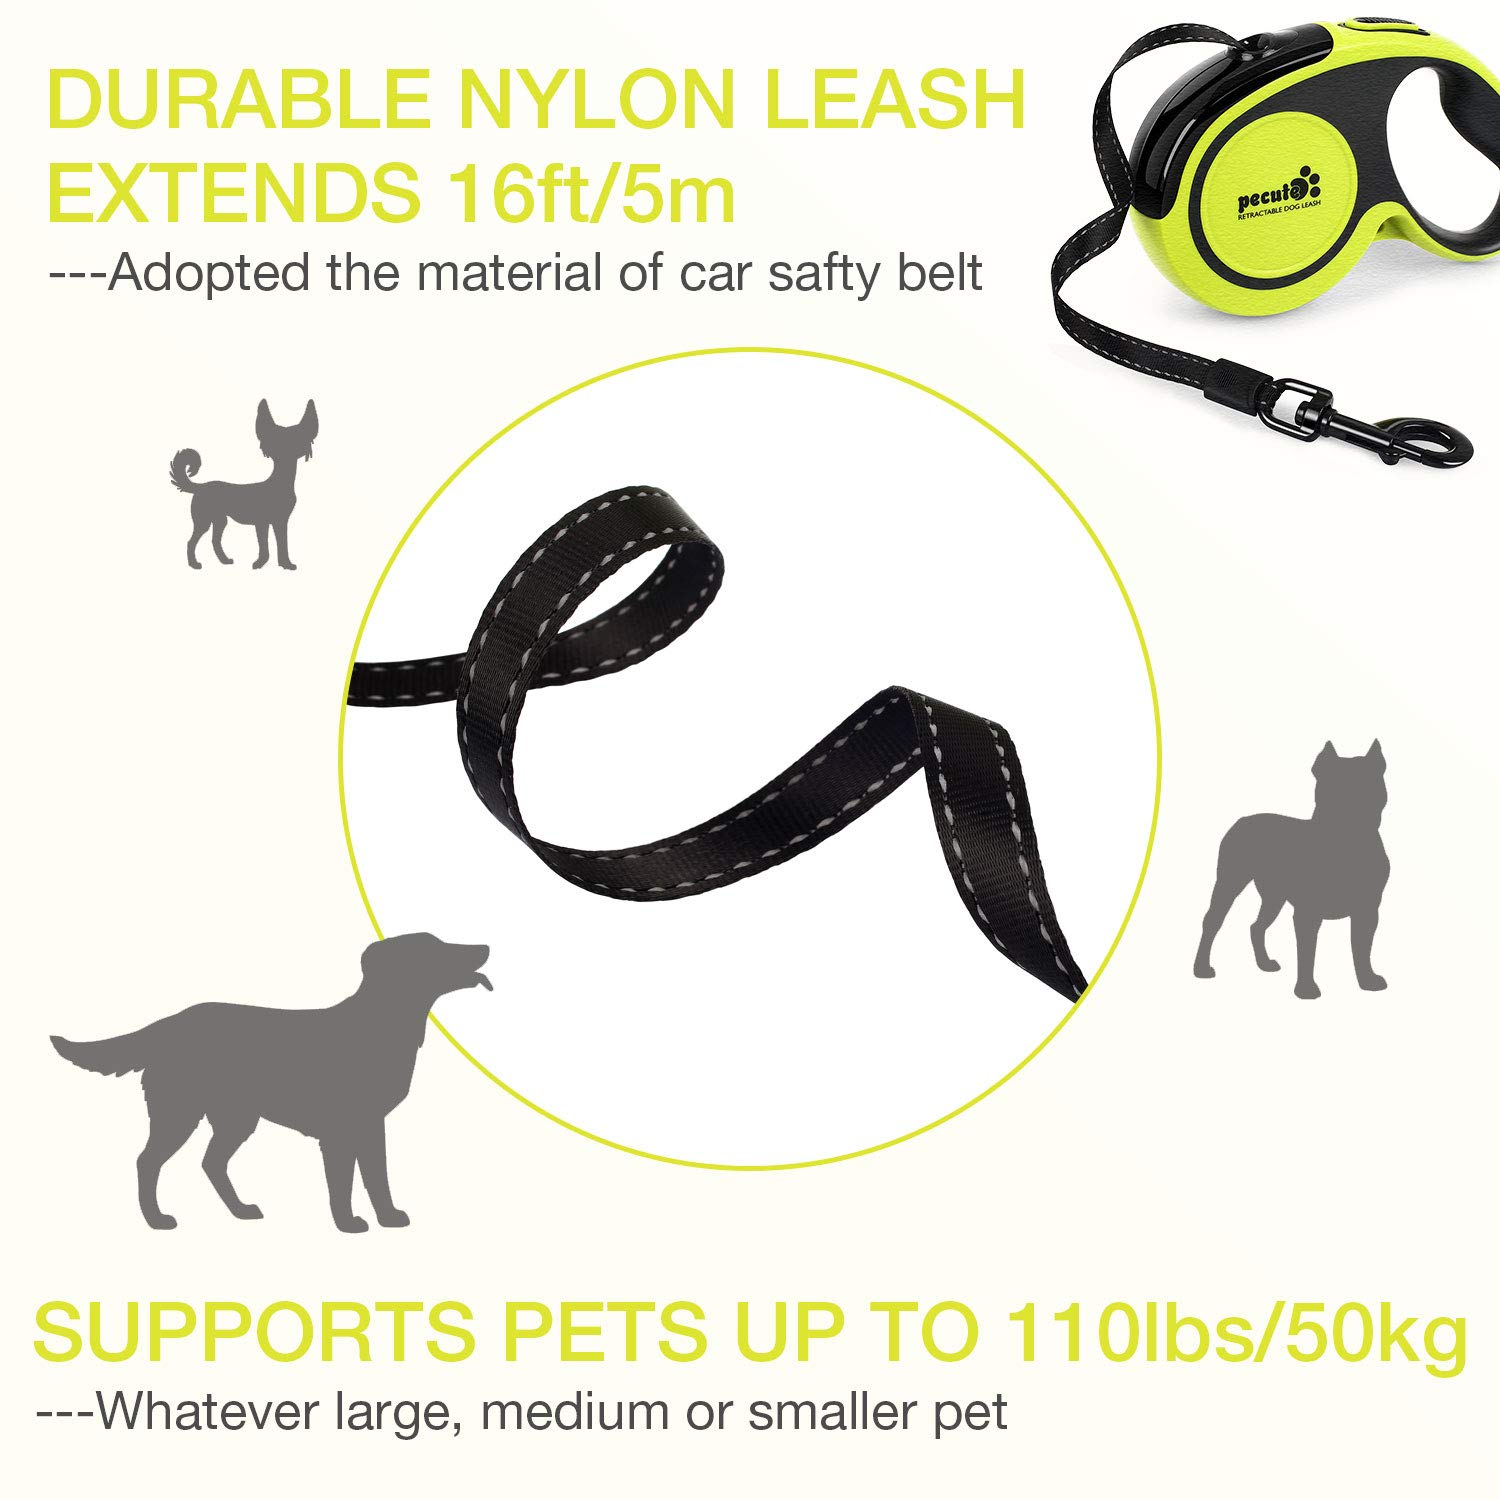 Pecute Retractable Dog Leash 16 ft Dog Night Walking Leash,360° Tangle Free Strong & Durable for Medium Large Dogs up to 110 lbs- Dog Waste Dispenser & Bags Included